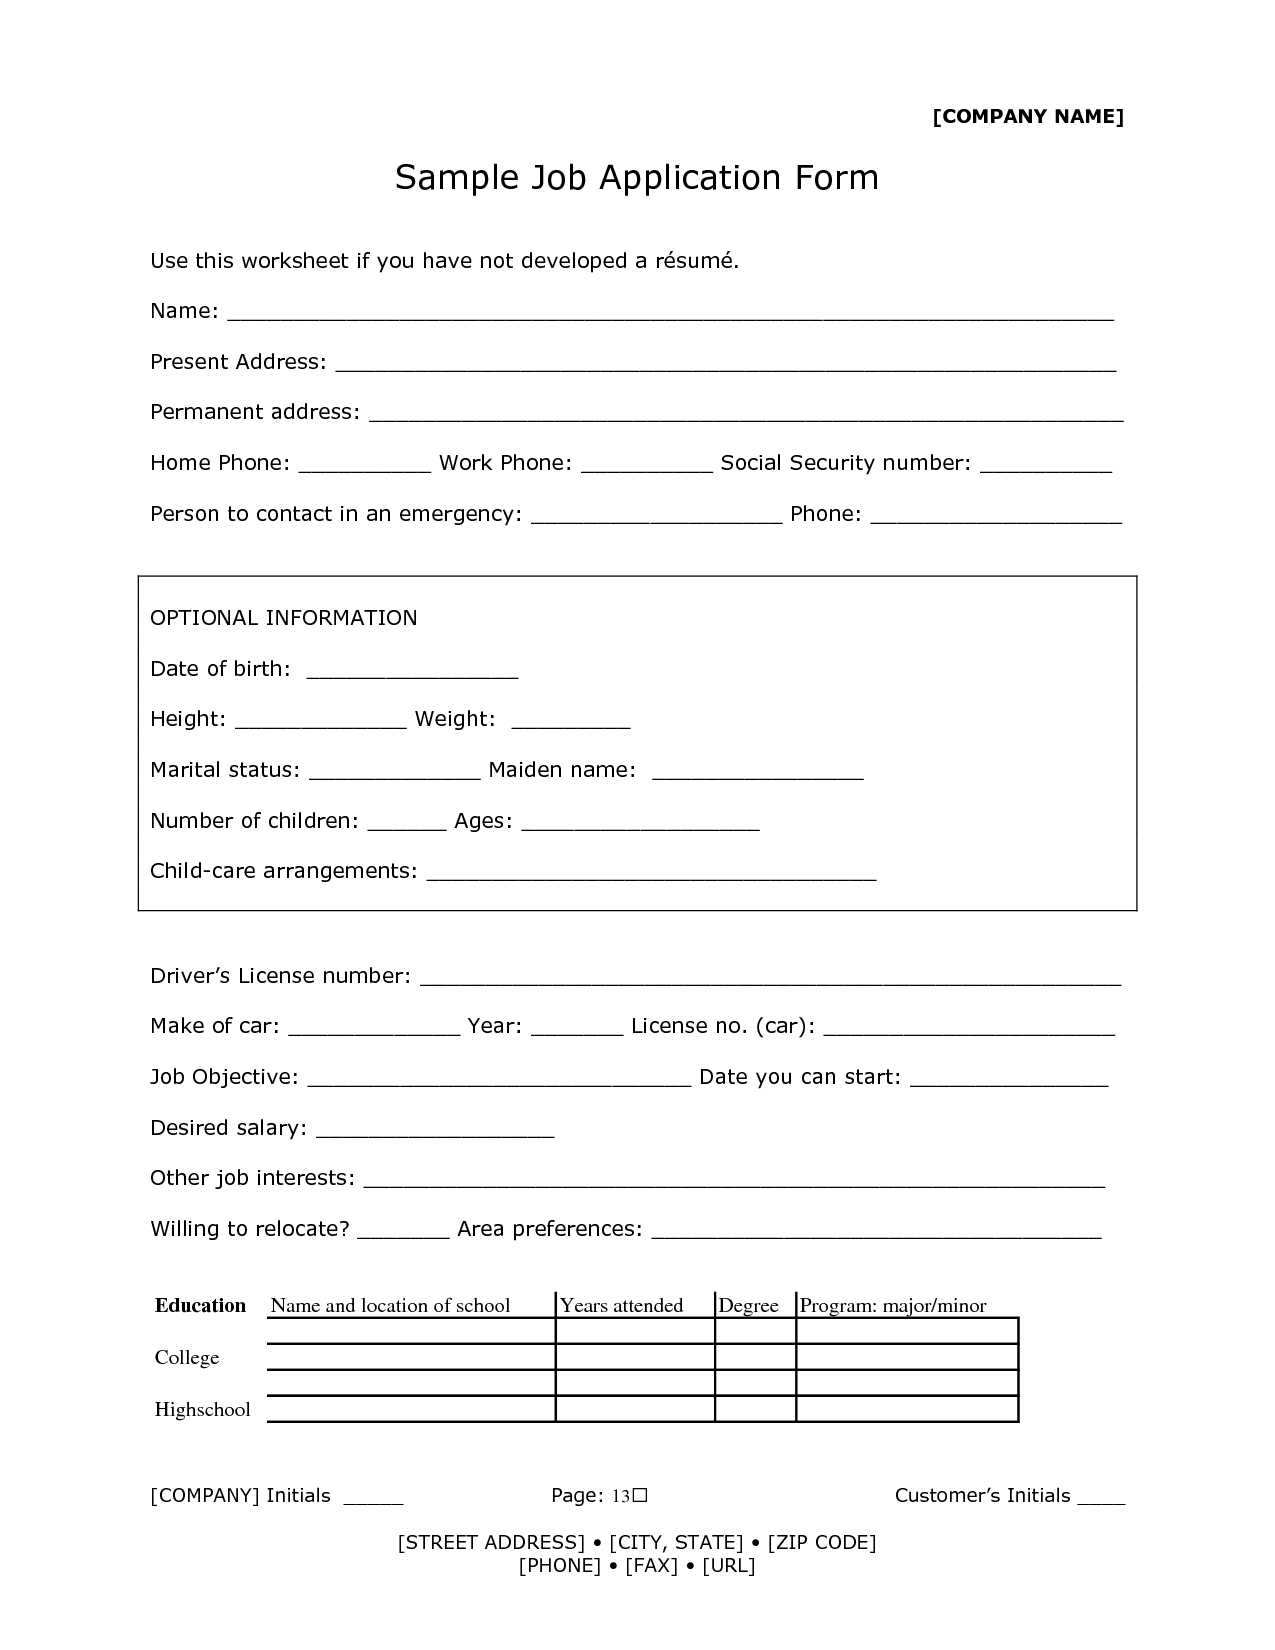 reception-job-application-form Jamaican Application Form Filled on